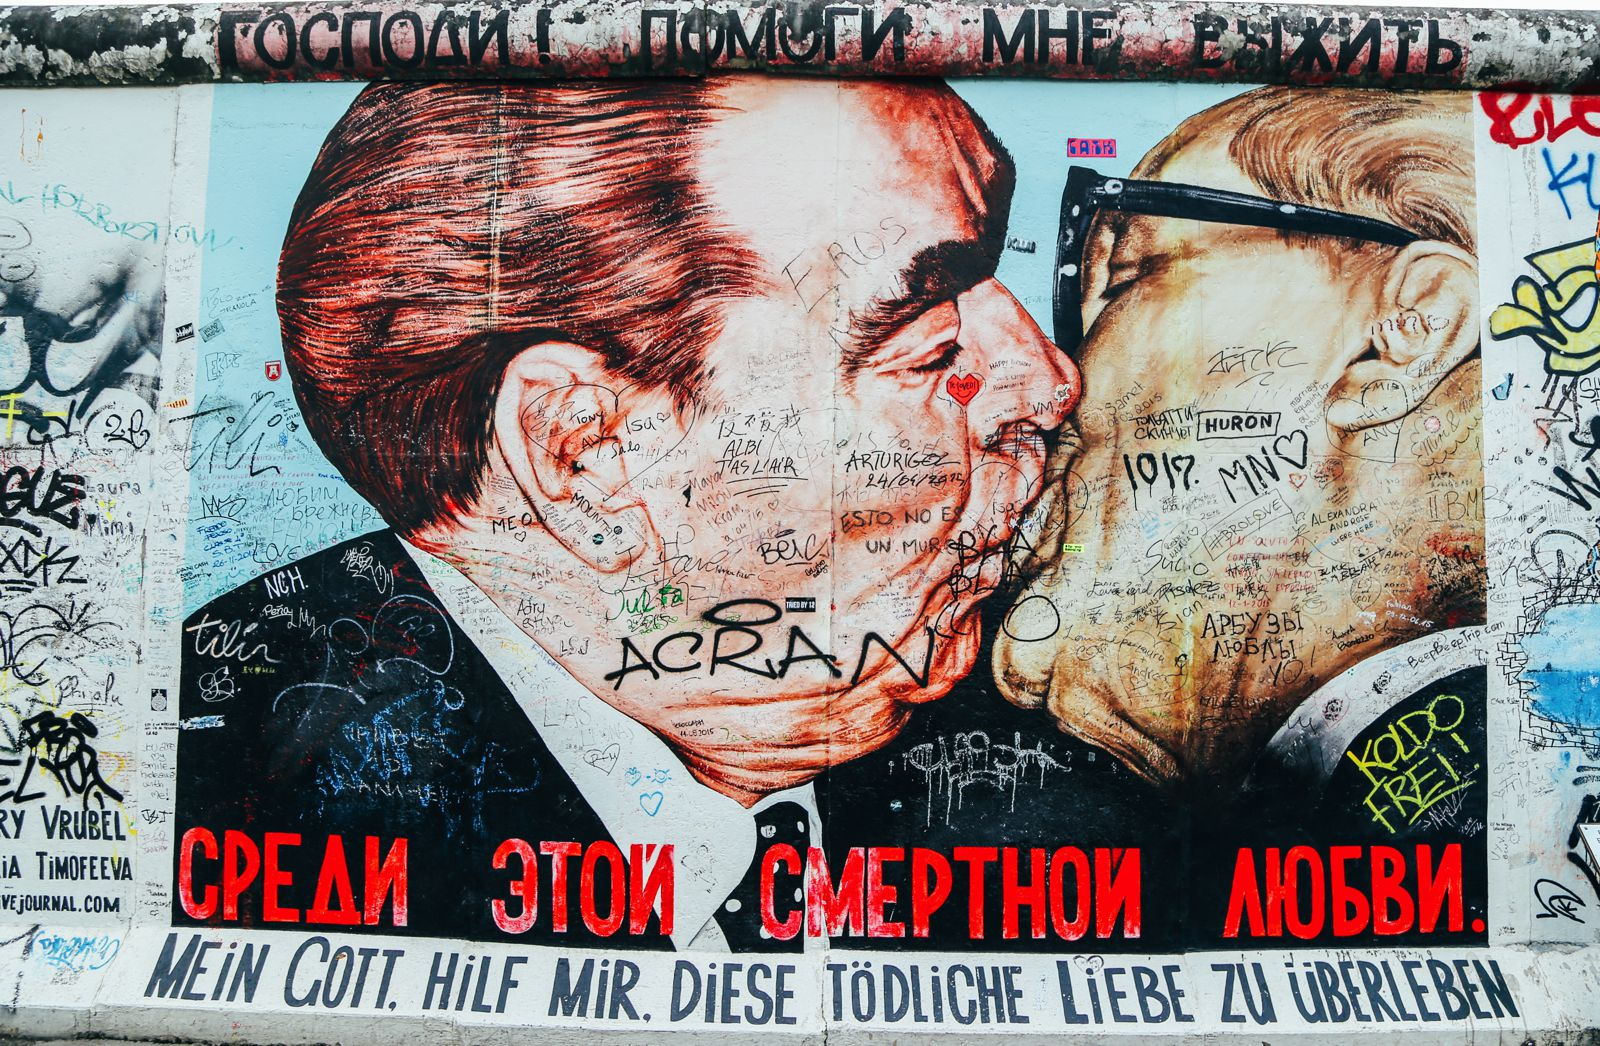 East Side Gallery, Berlin, Germany (13)